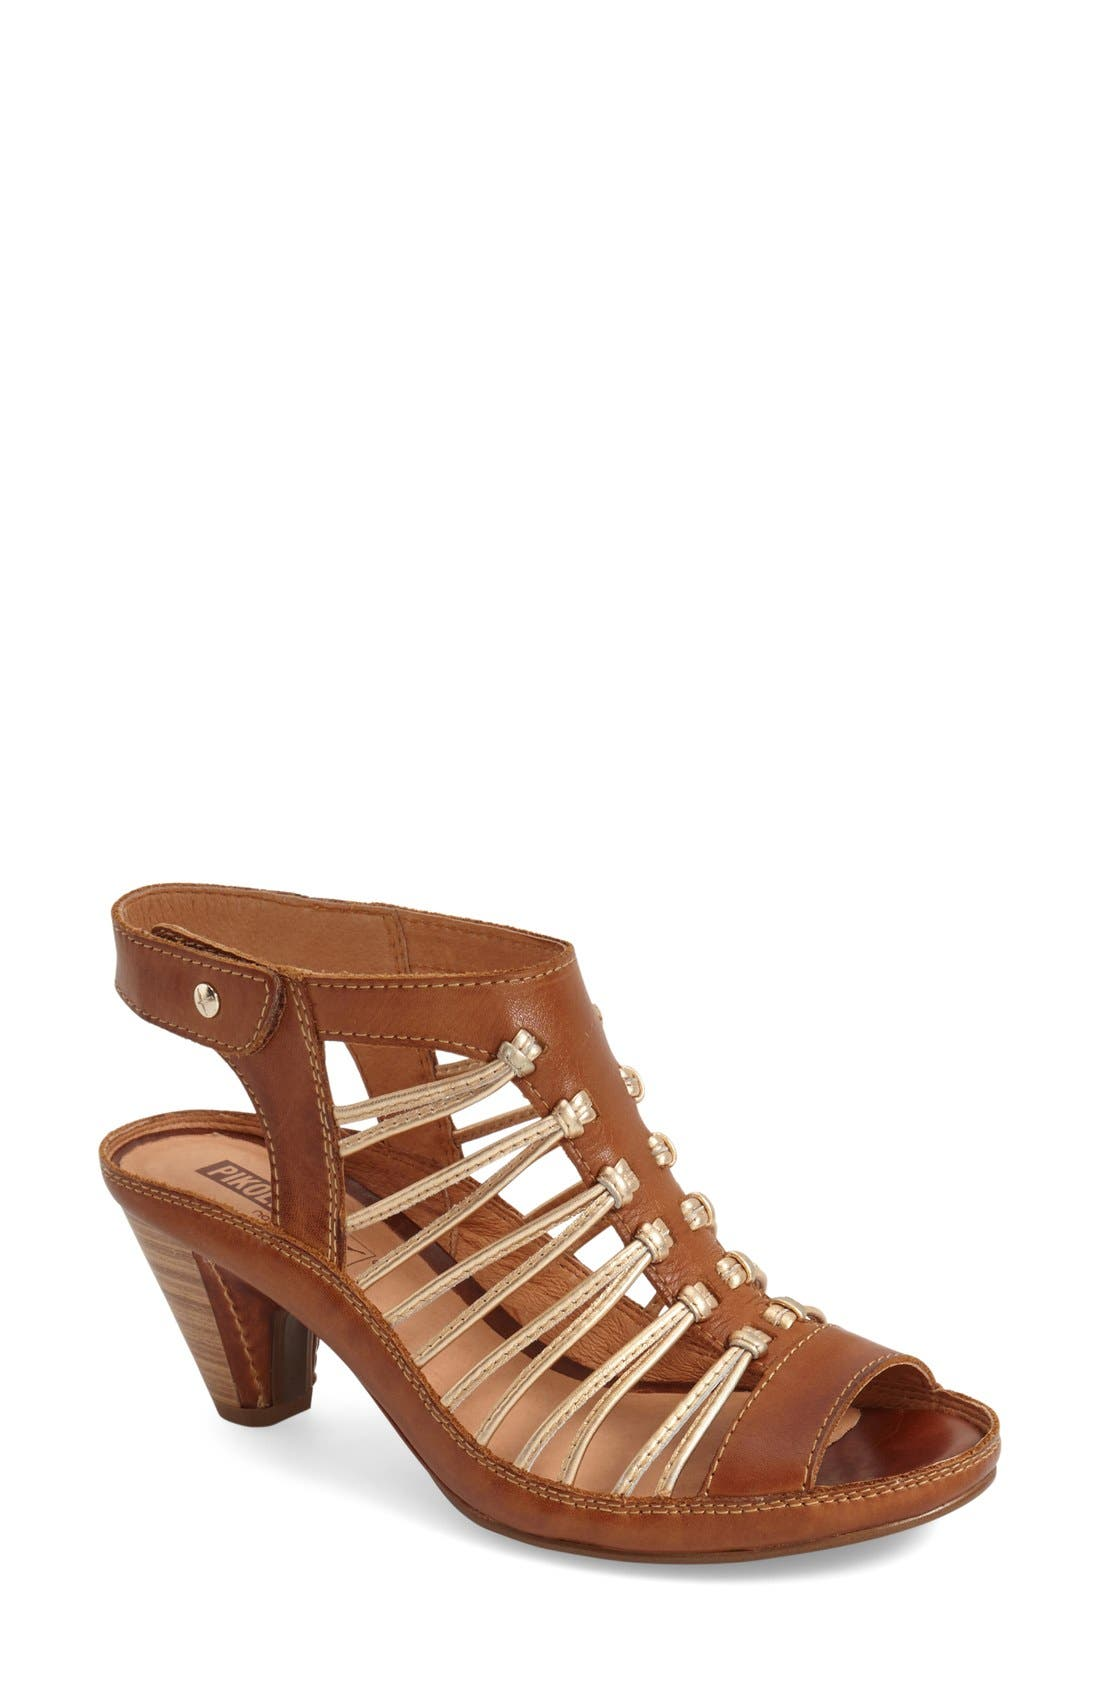 'Java' Sandal,                         Main,                         color, Brandy Leather